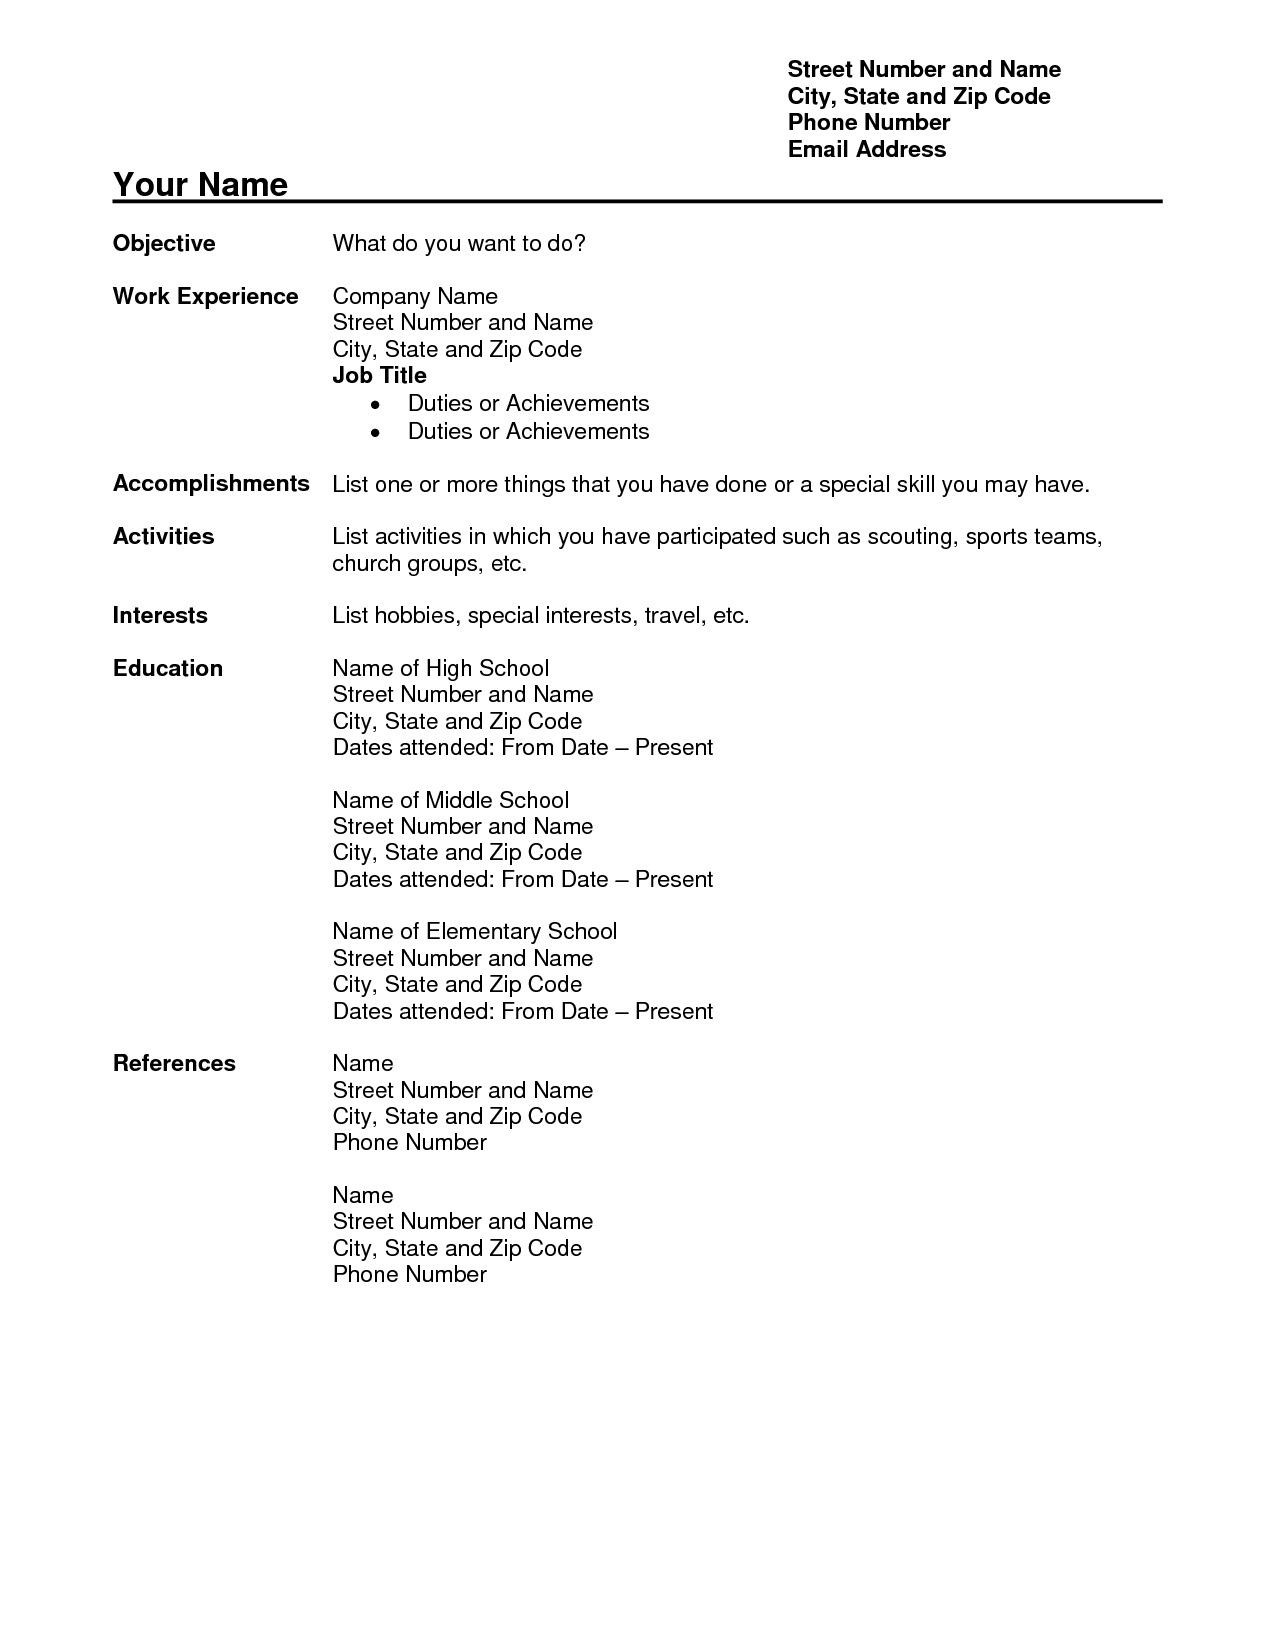 Free Teacher Resume Templates Download Free Teacher Resume Templates  Download, Free Teacher Resume Templates Microsoft  Download Resume